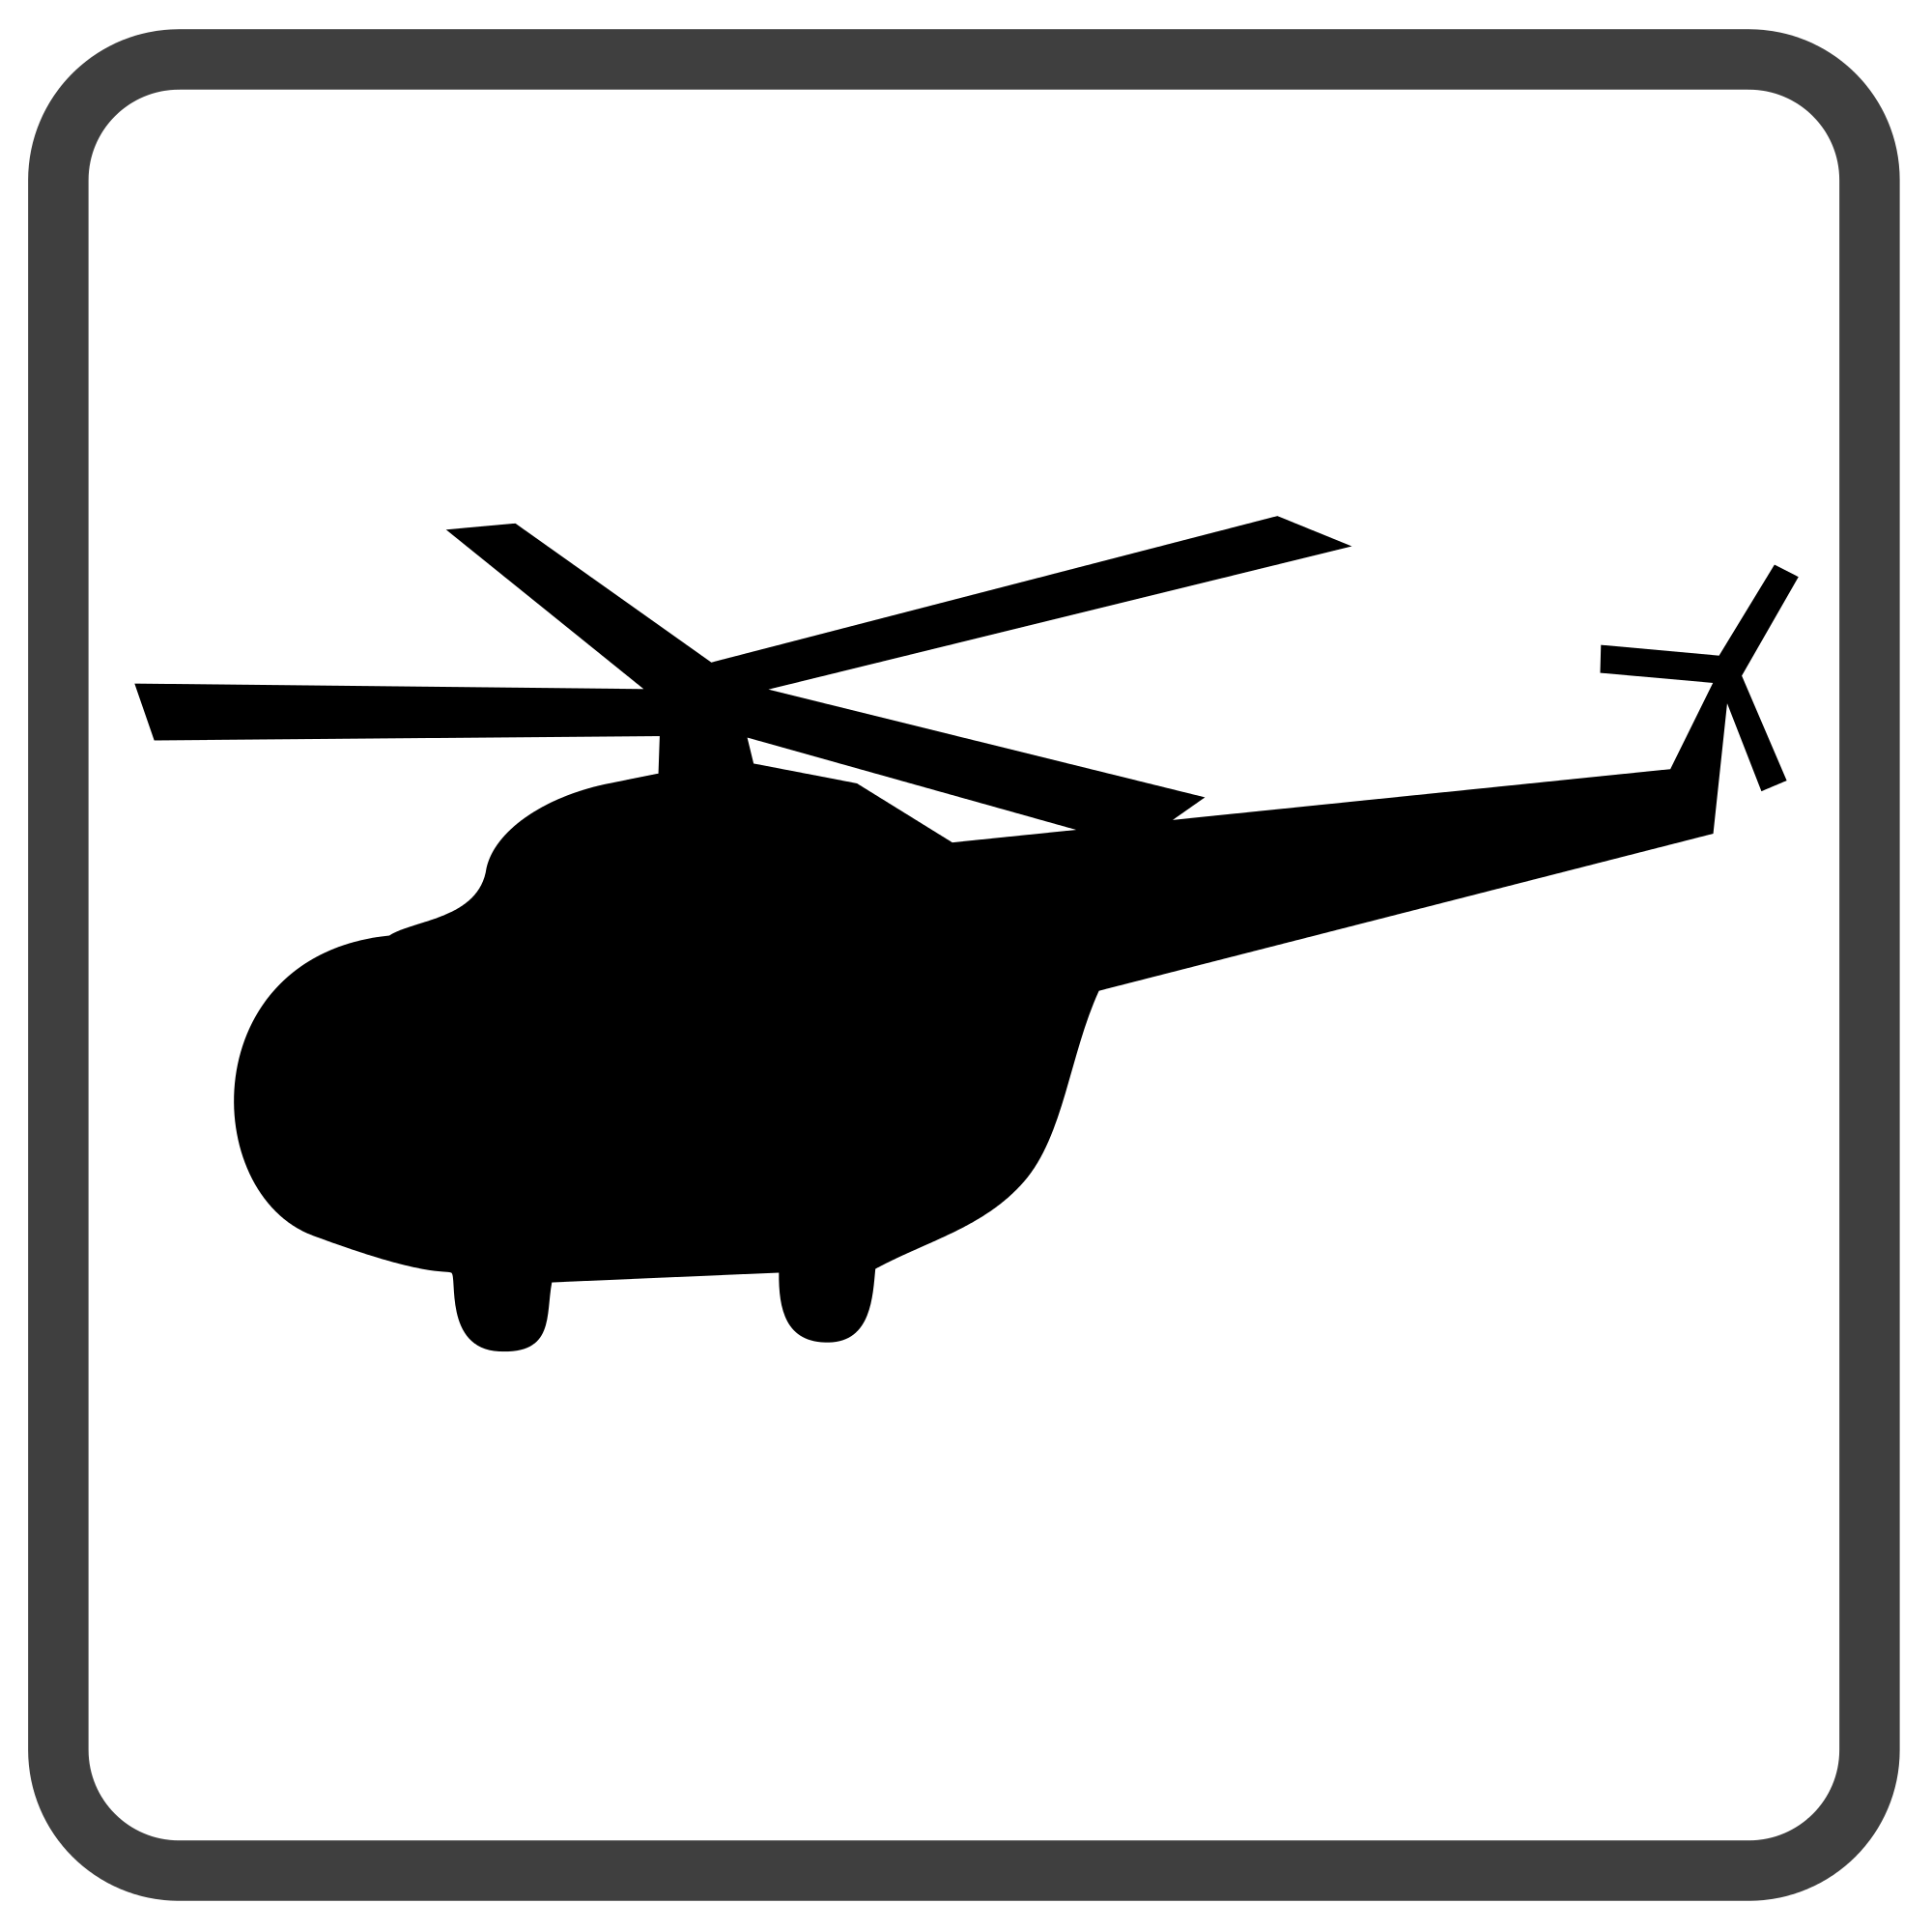 Helicopter svg #18, Download drawings